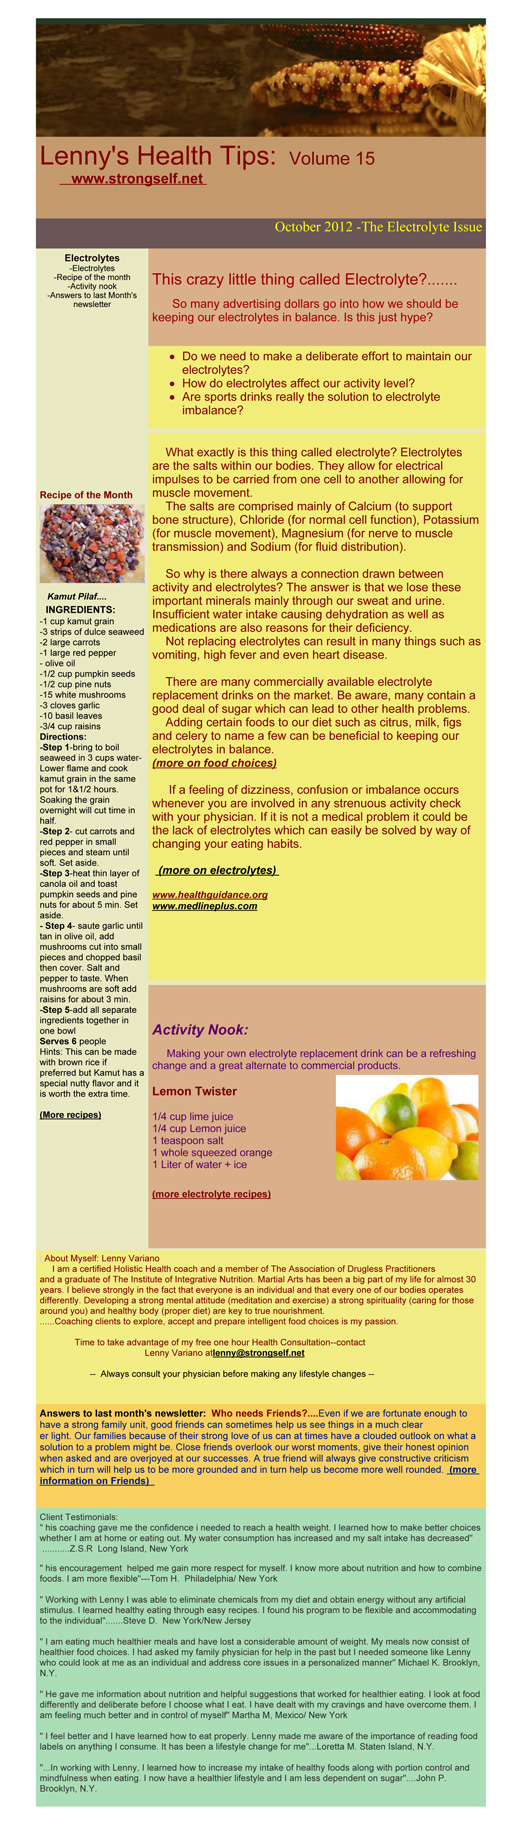 October 2012 Healthy Tips Newsletter